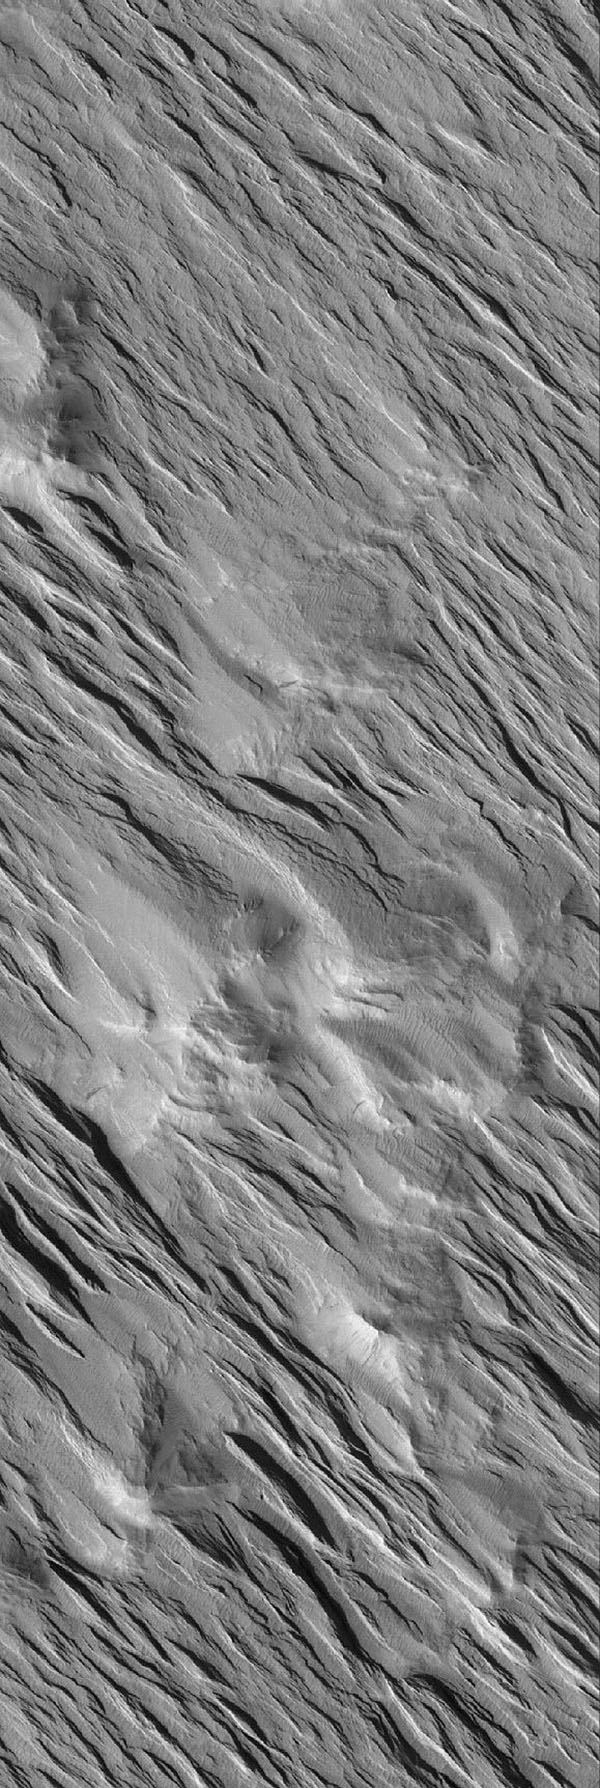 NASA's Mars Global Surveyor shows yardangs, a ridge-and-groove landform produced by wind erosion of a granular, sand-rich bedrock. These are located west-southwest of the volcano, Olympus Mons on Mars.